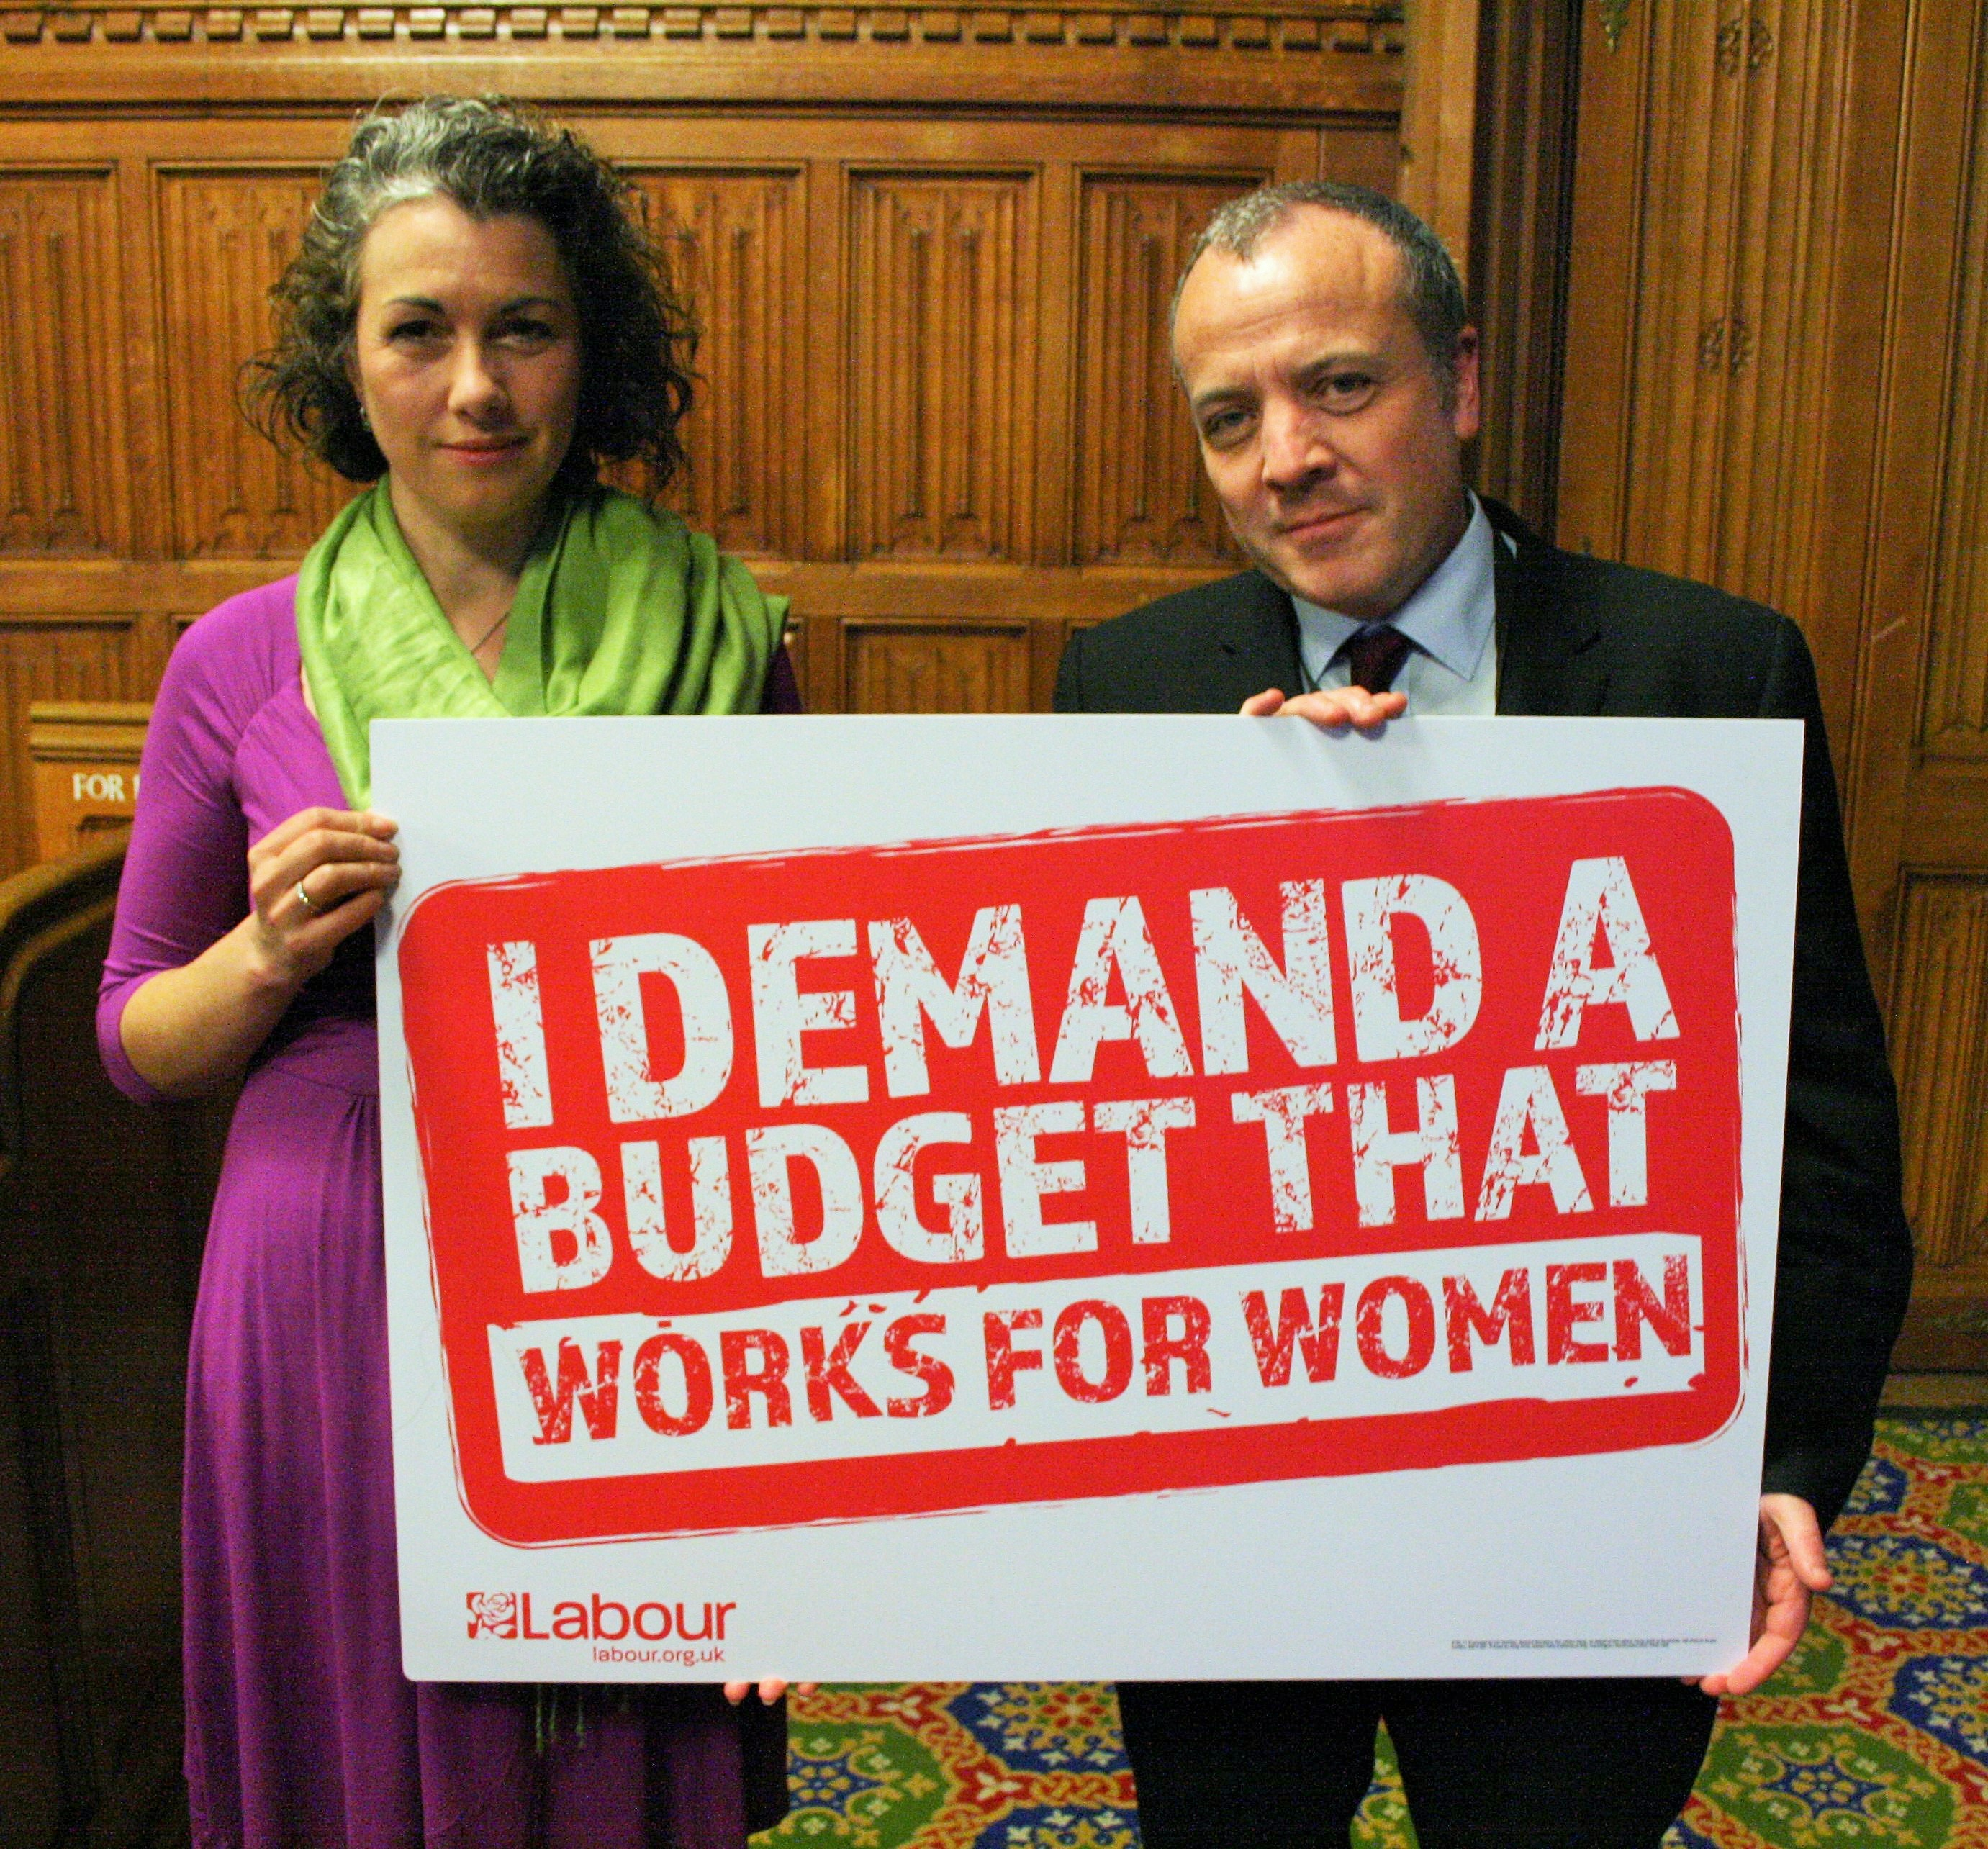 MK_with_Sarah_Champion_-_Budget_for_Women_-_March-2017.jpg